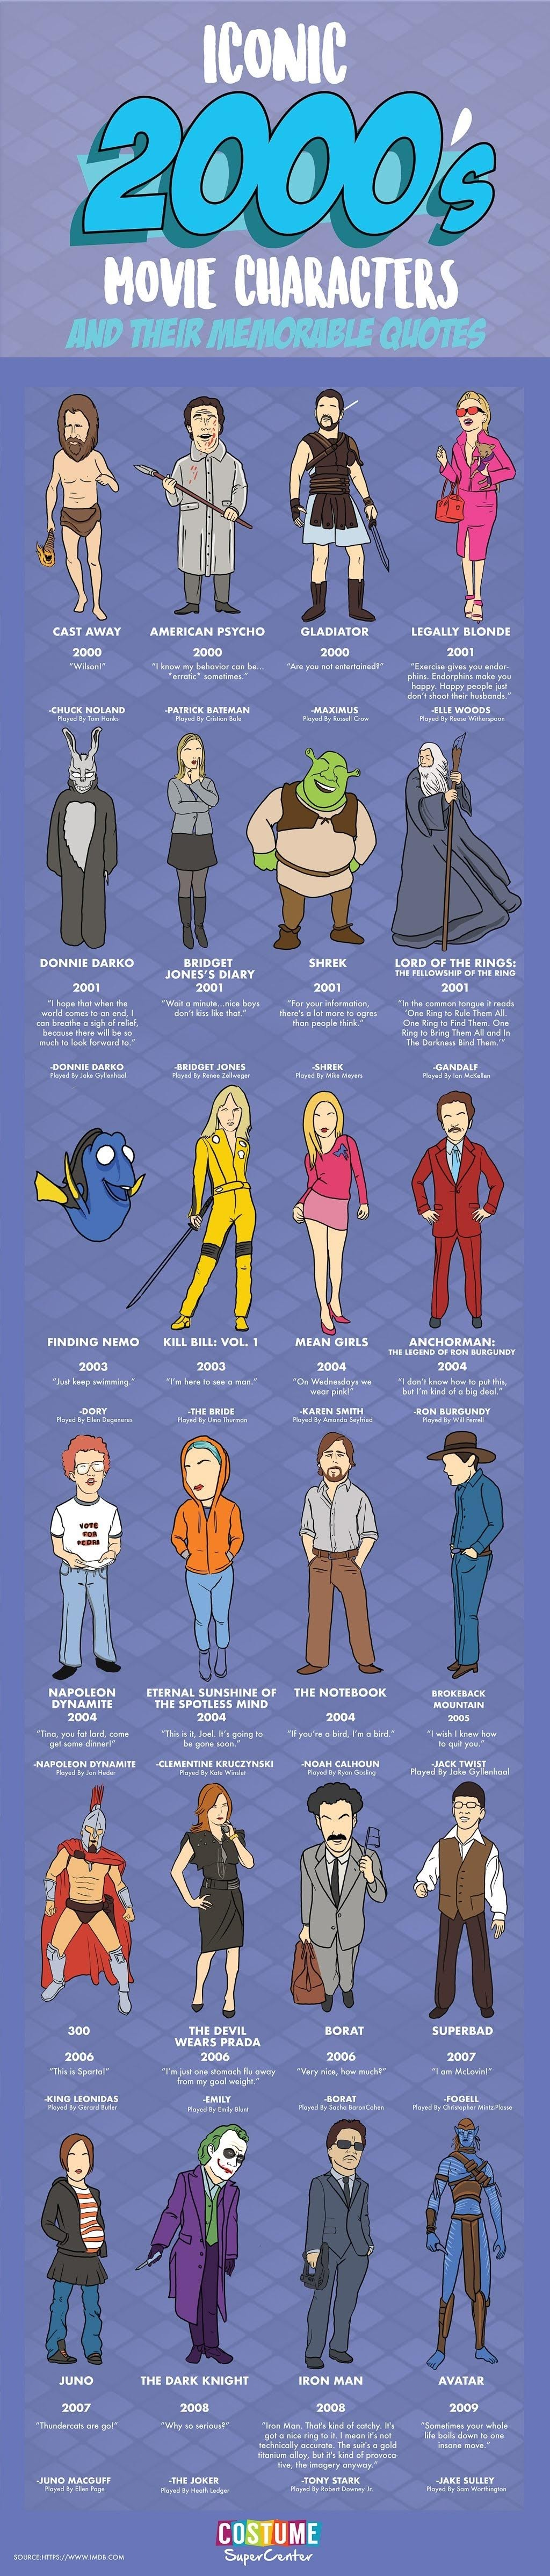 MOVIE CHARACTERS ICONIC 2000 #INFOGRAPHIC